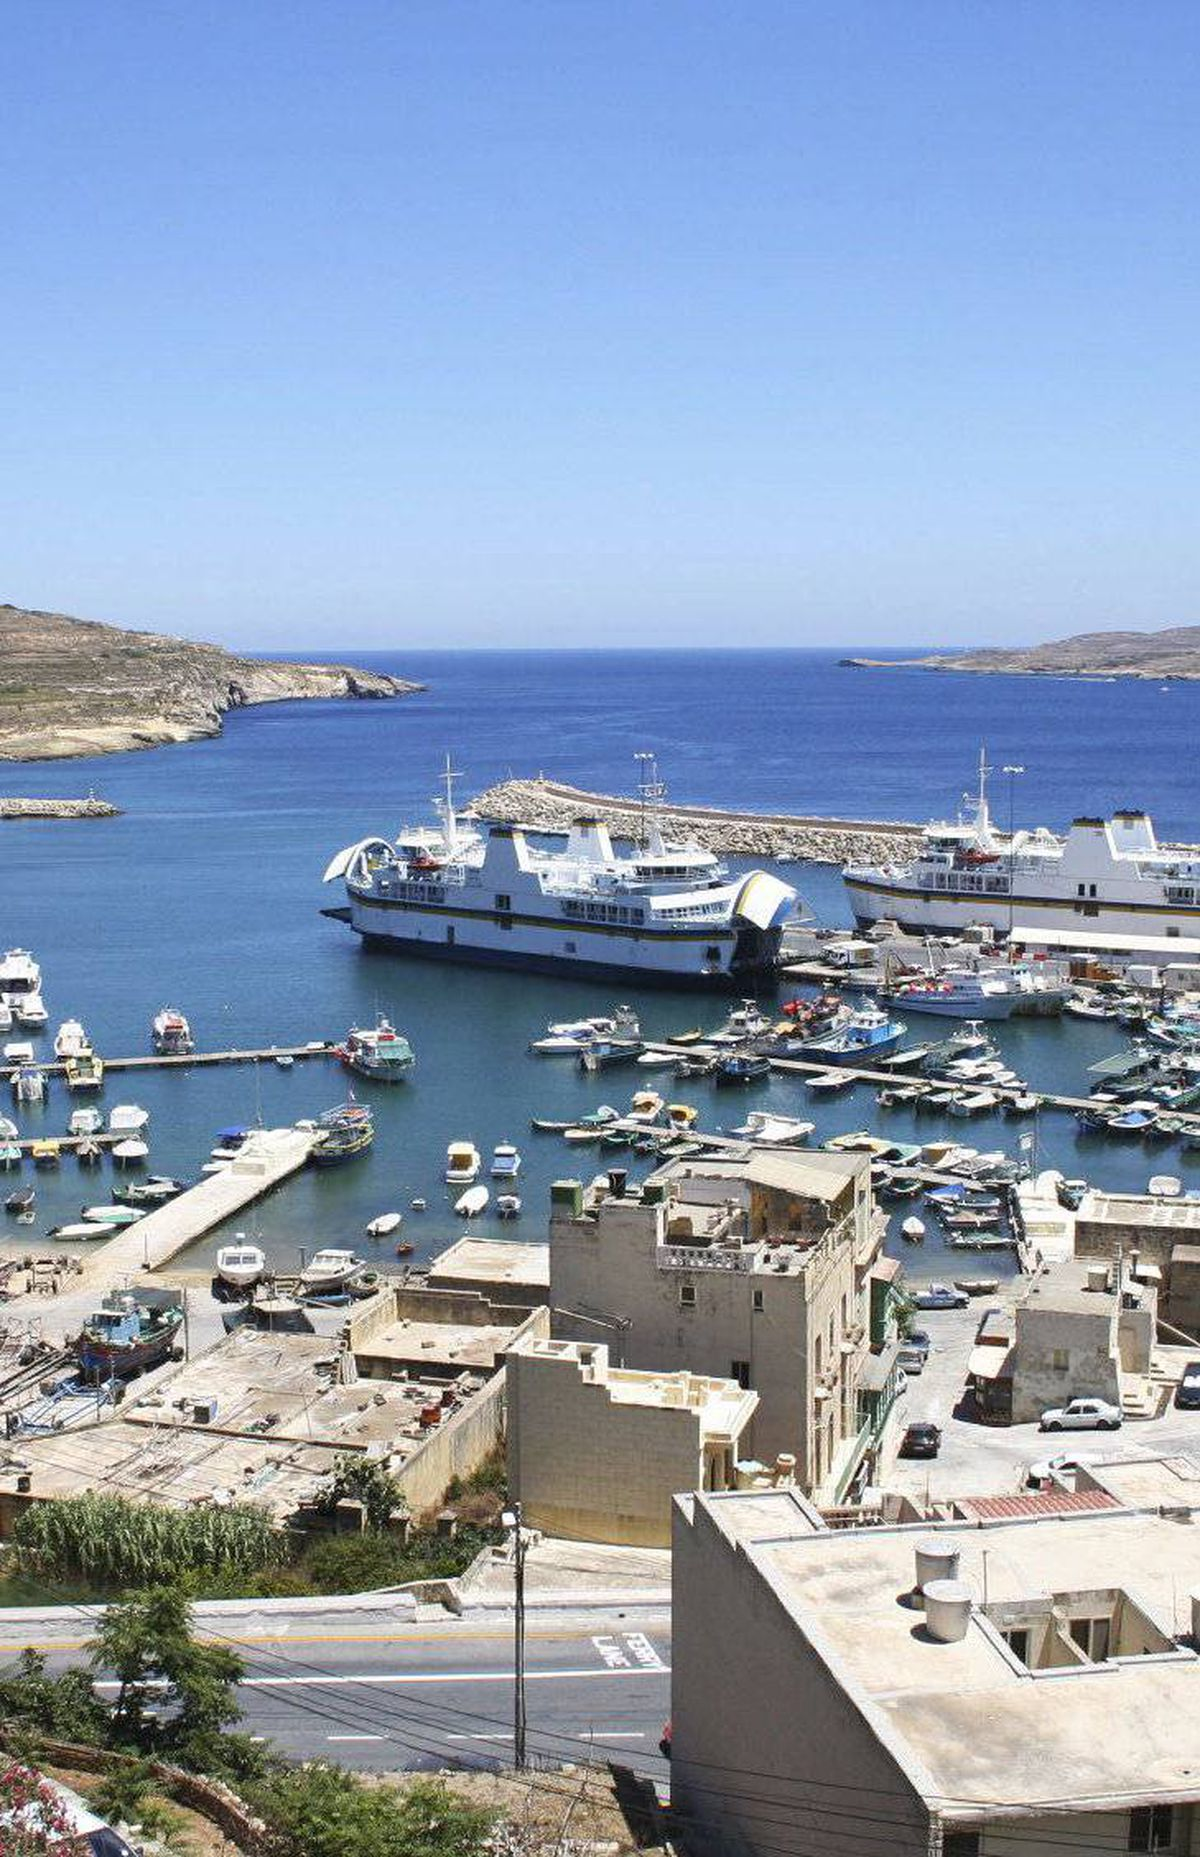 Mgarr, Malta: The fishing town on the east end of the lesser known Maltese island of Gozo has a 250-year-old fort built by the Knights of St. John. It's quiet and little changed because it's been well off the usual tourist routes. Who's visiting: Seabourn Cruise Line